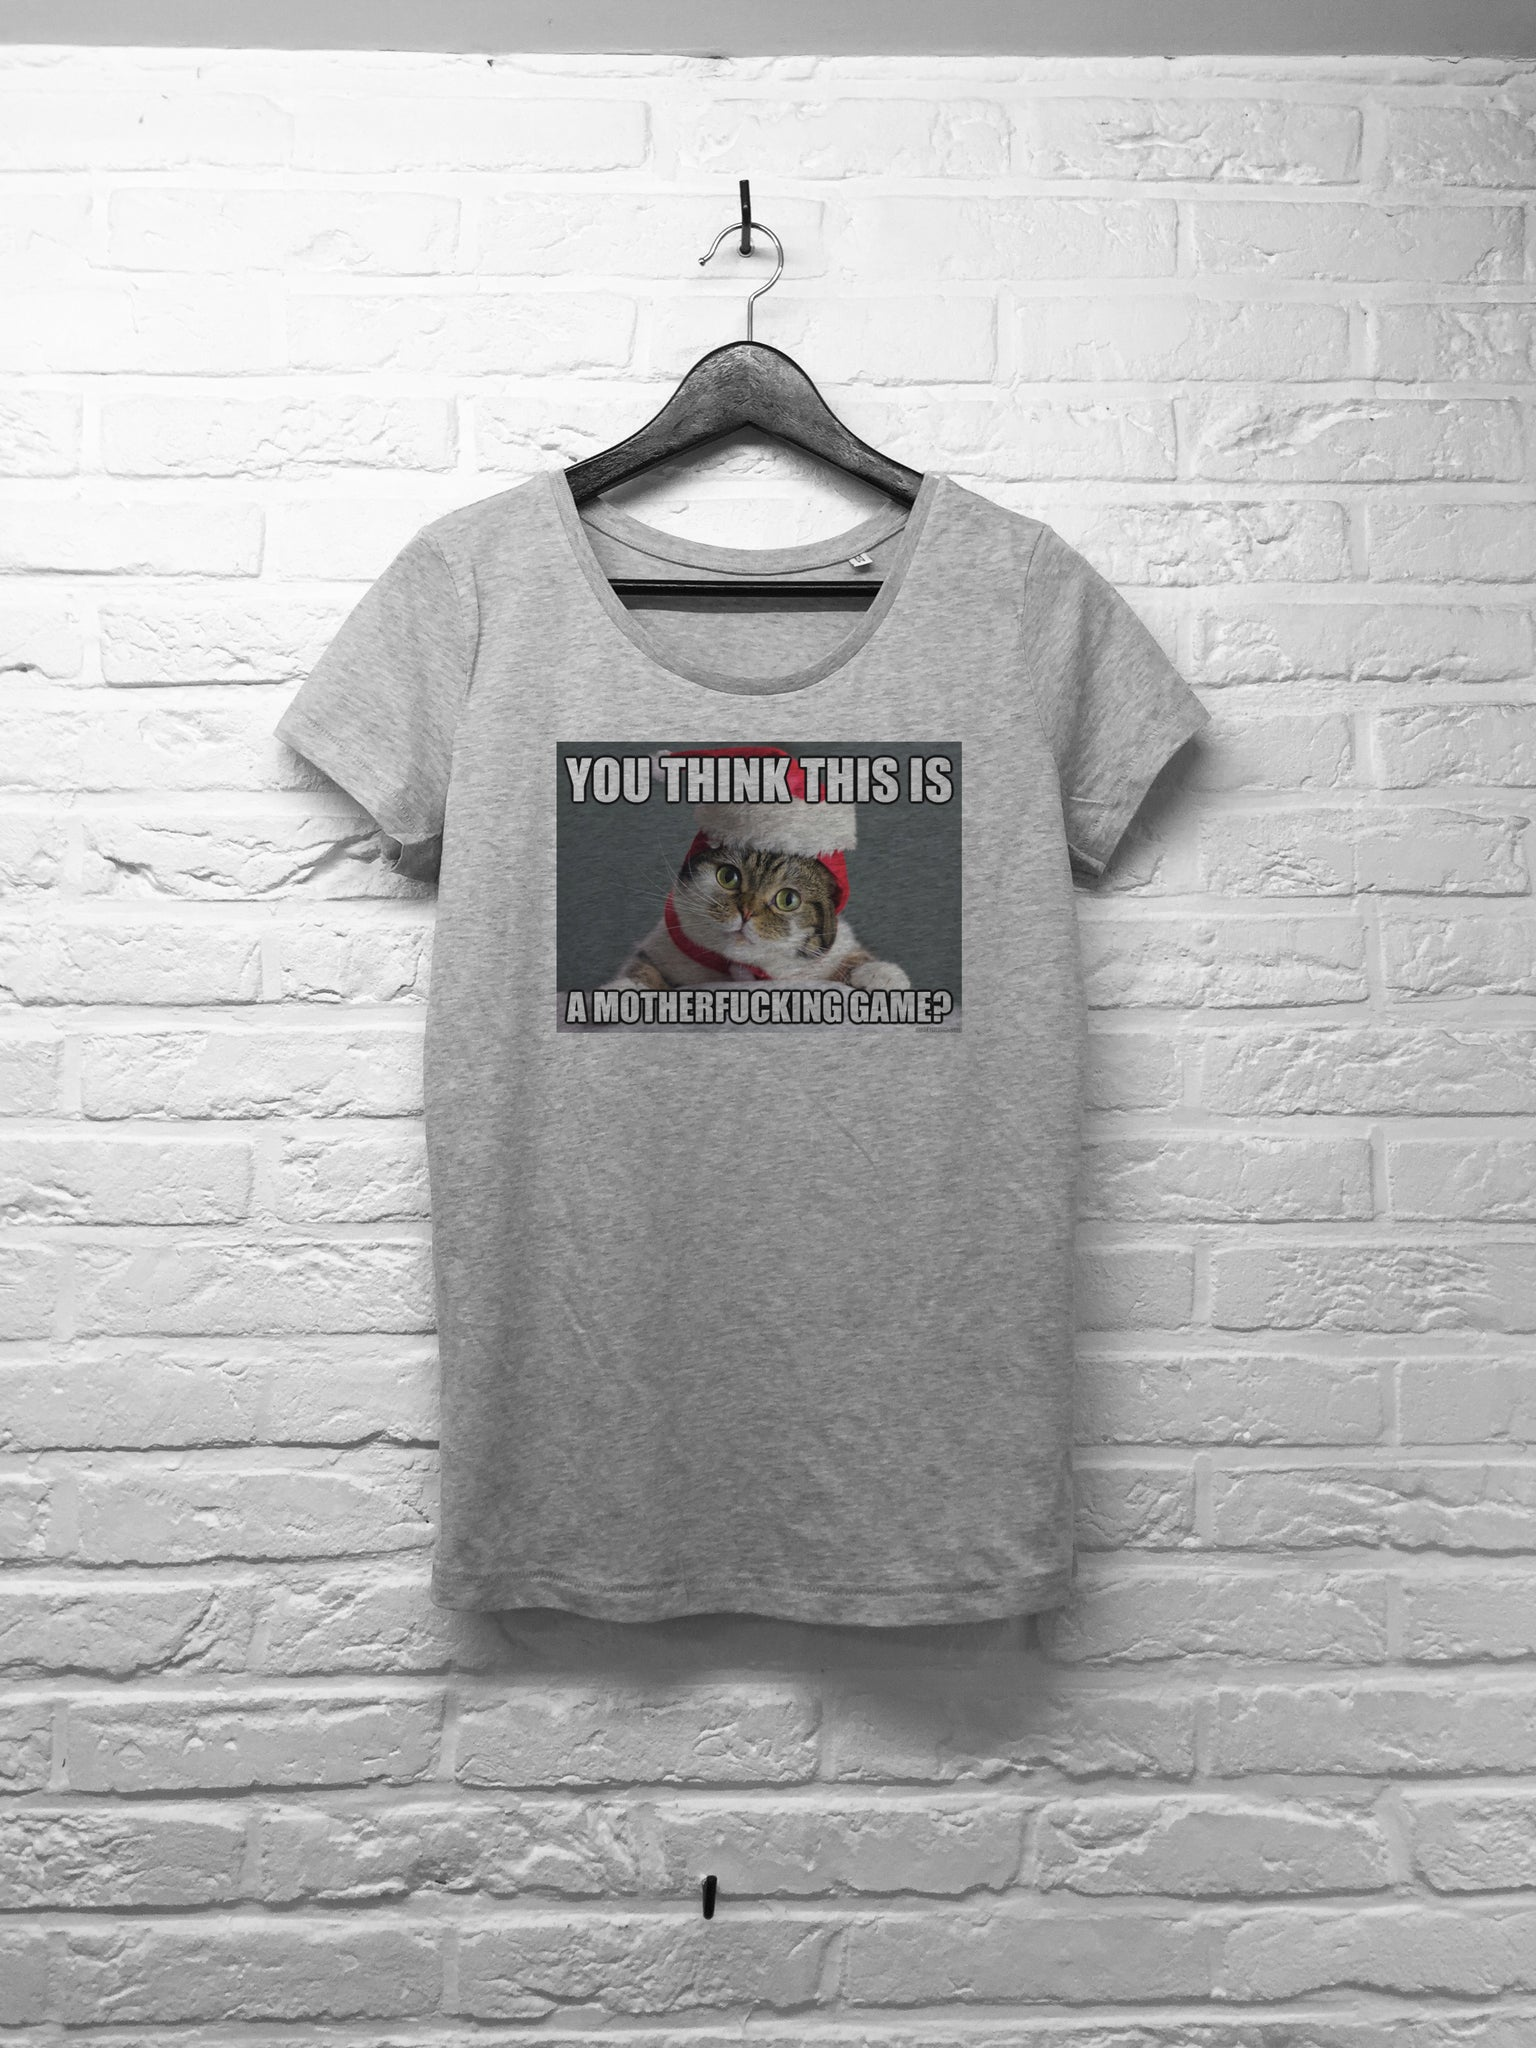 You think this is a motherfucking game - Femme - Gris-T shirt-Atelier Amelot